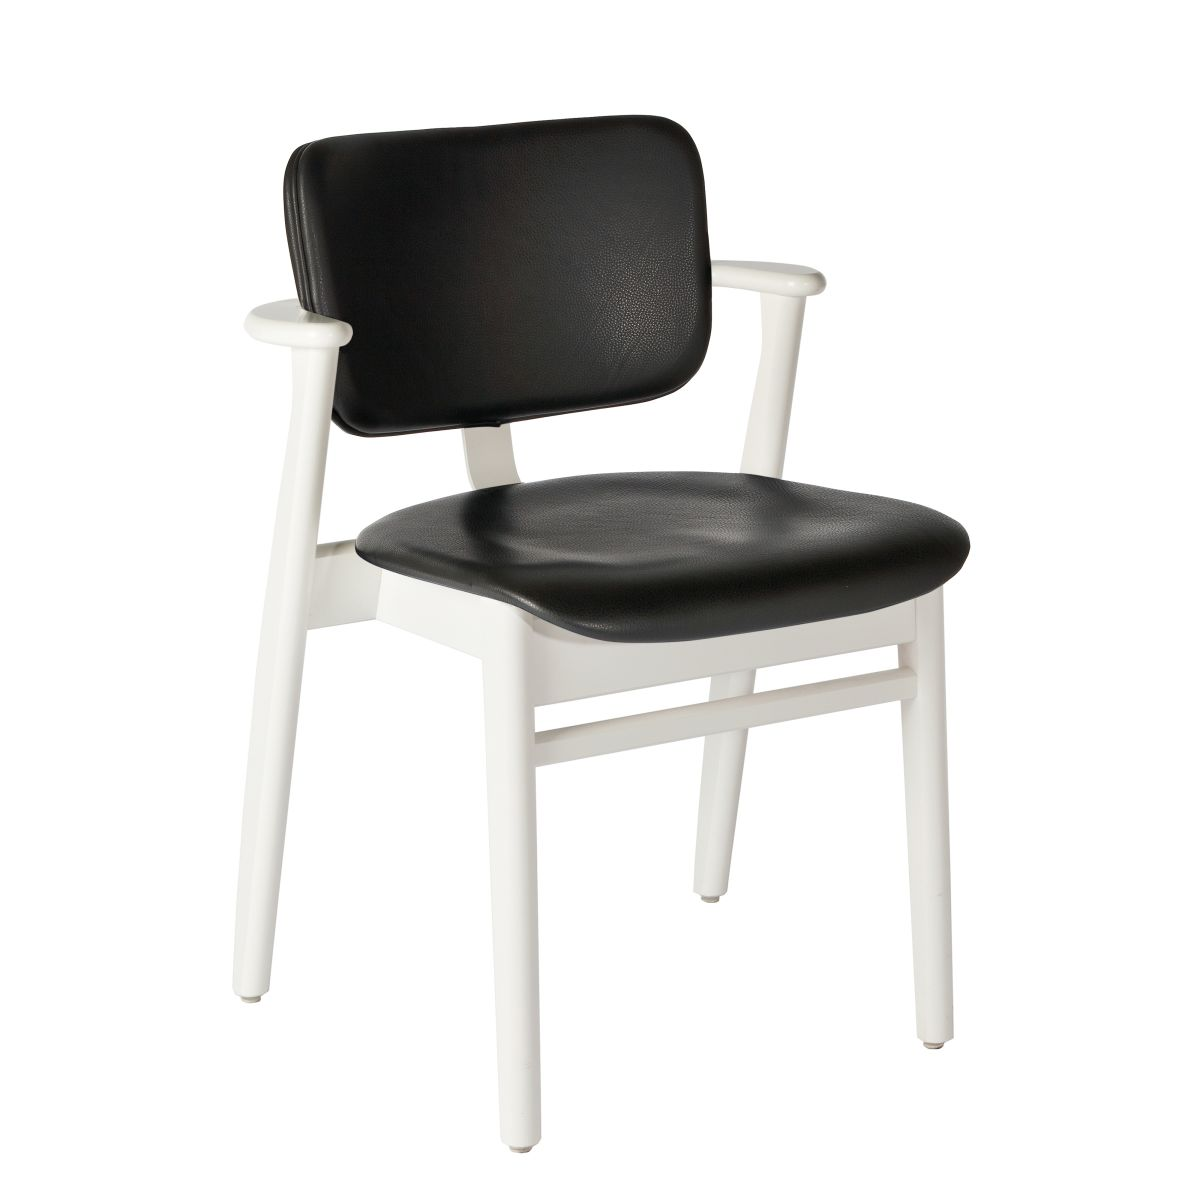 Domus-Chair-legs-white-laquered-birch_seat-back-leather-black-2561115